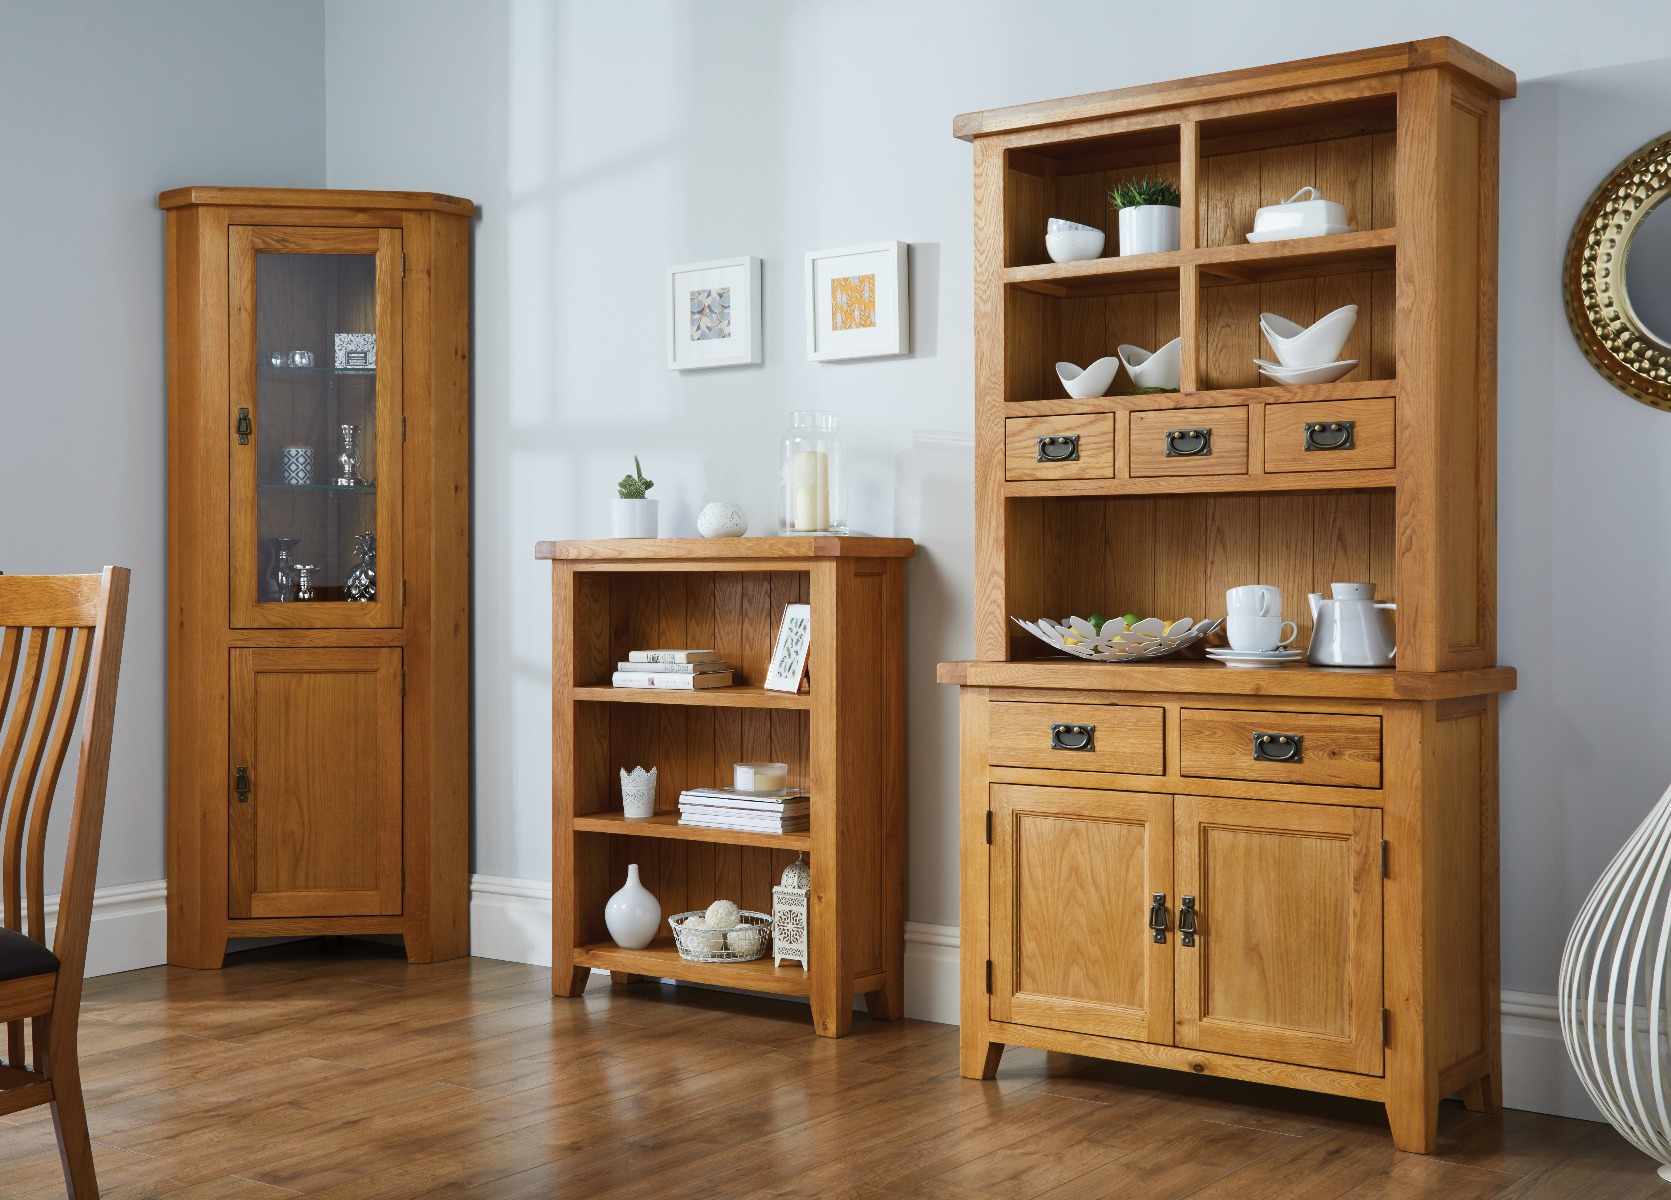 oak living room furniture country oak range from Top Furniture